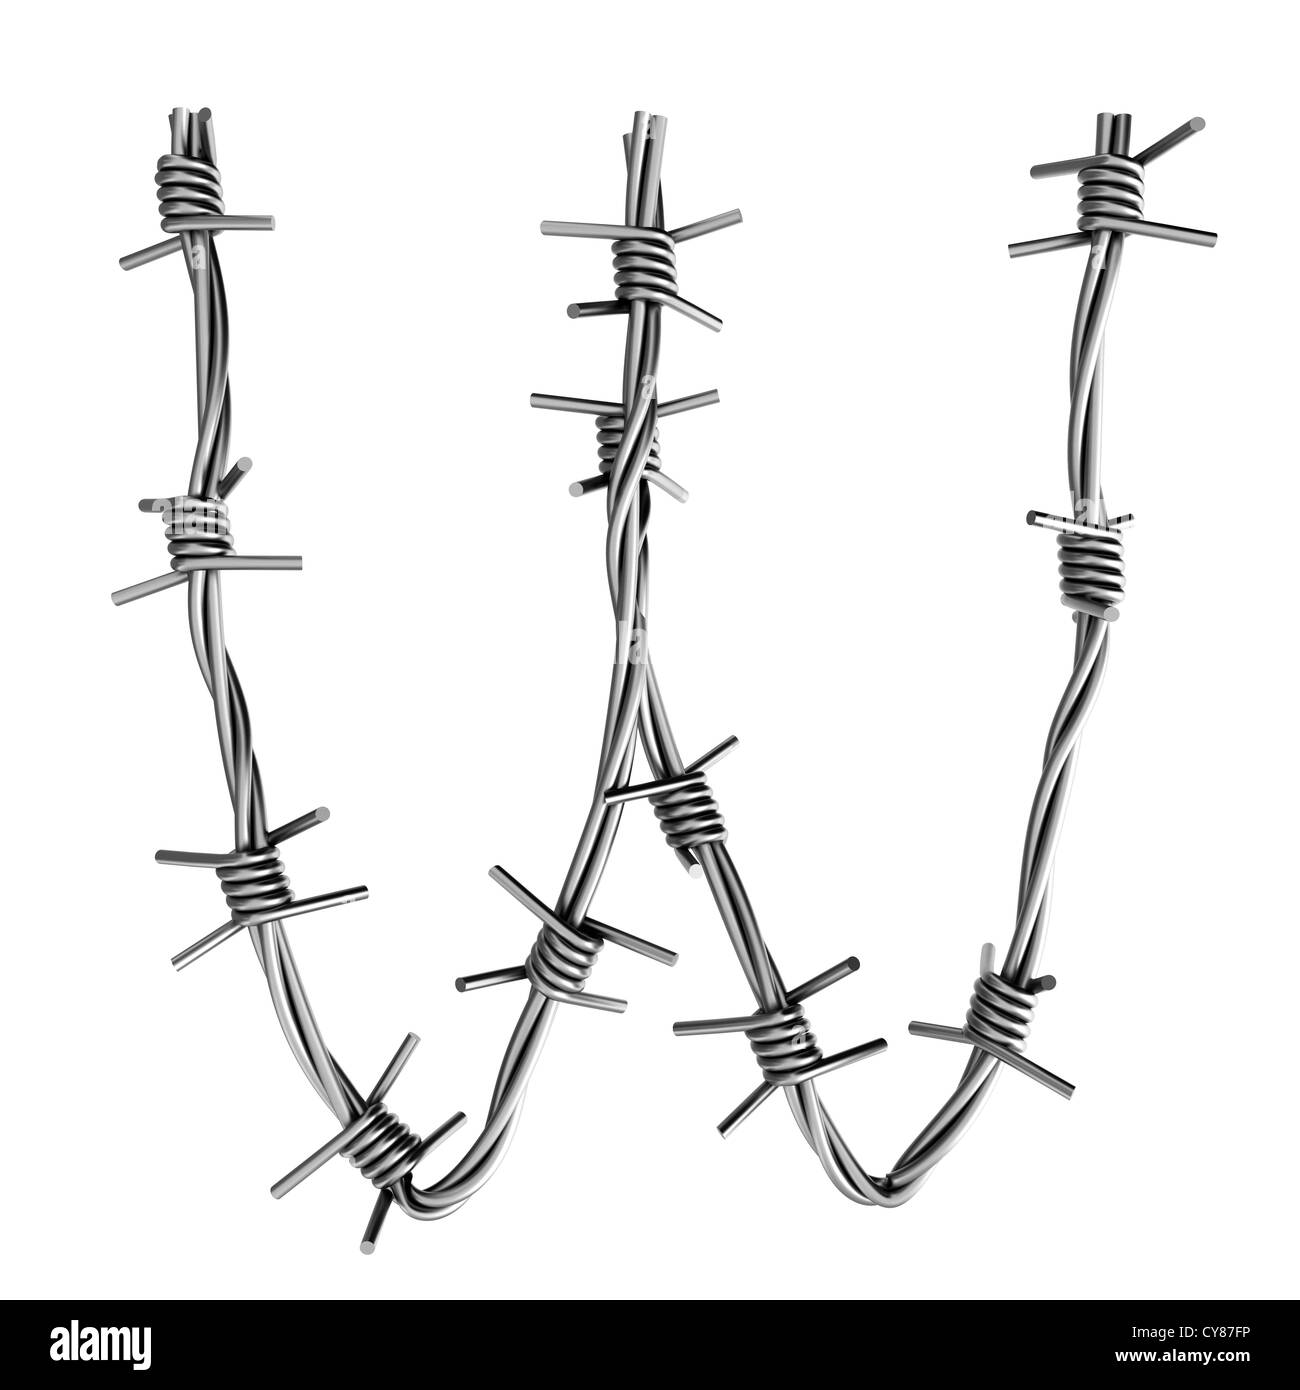 Letter W made from barbed wire Stock Photo: 51197994 - Alamy